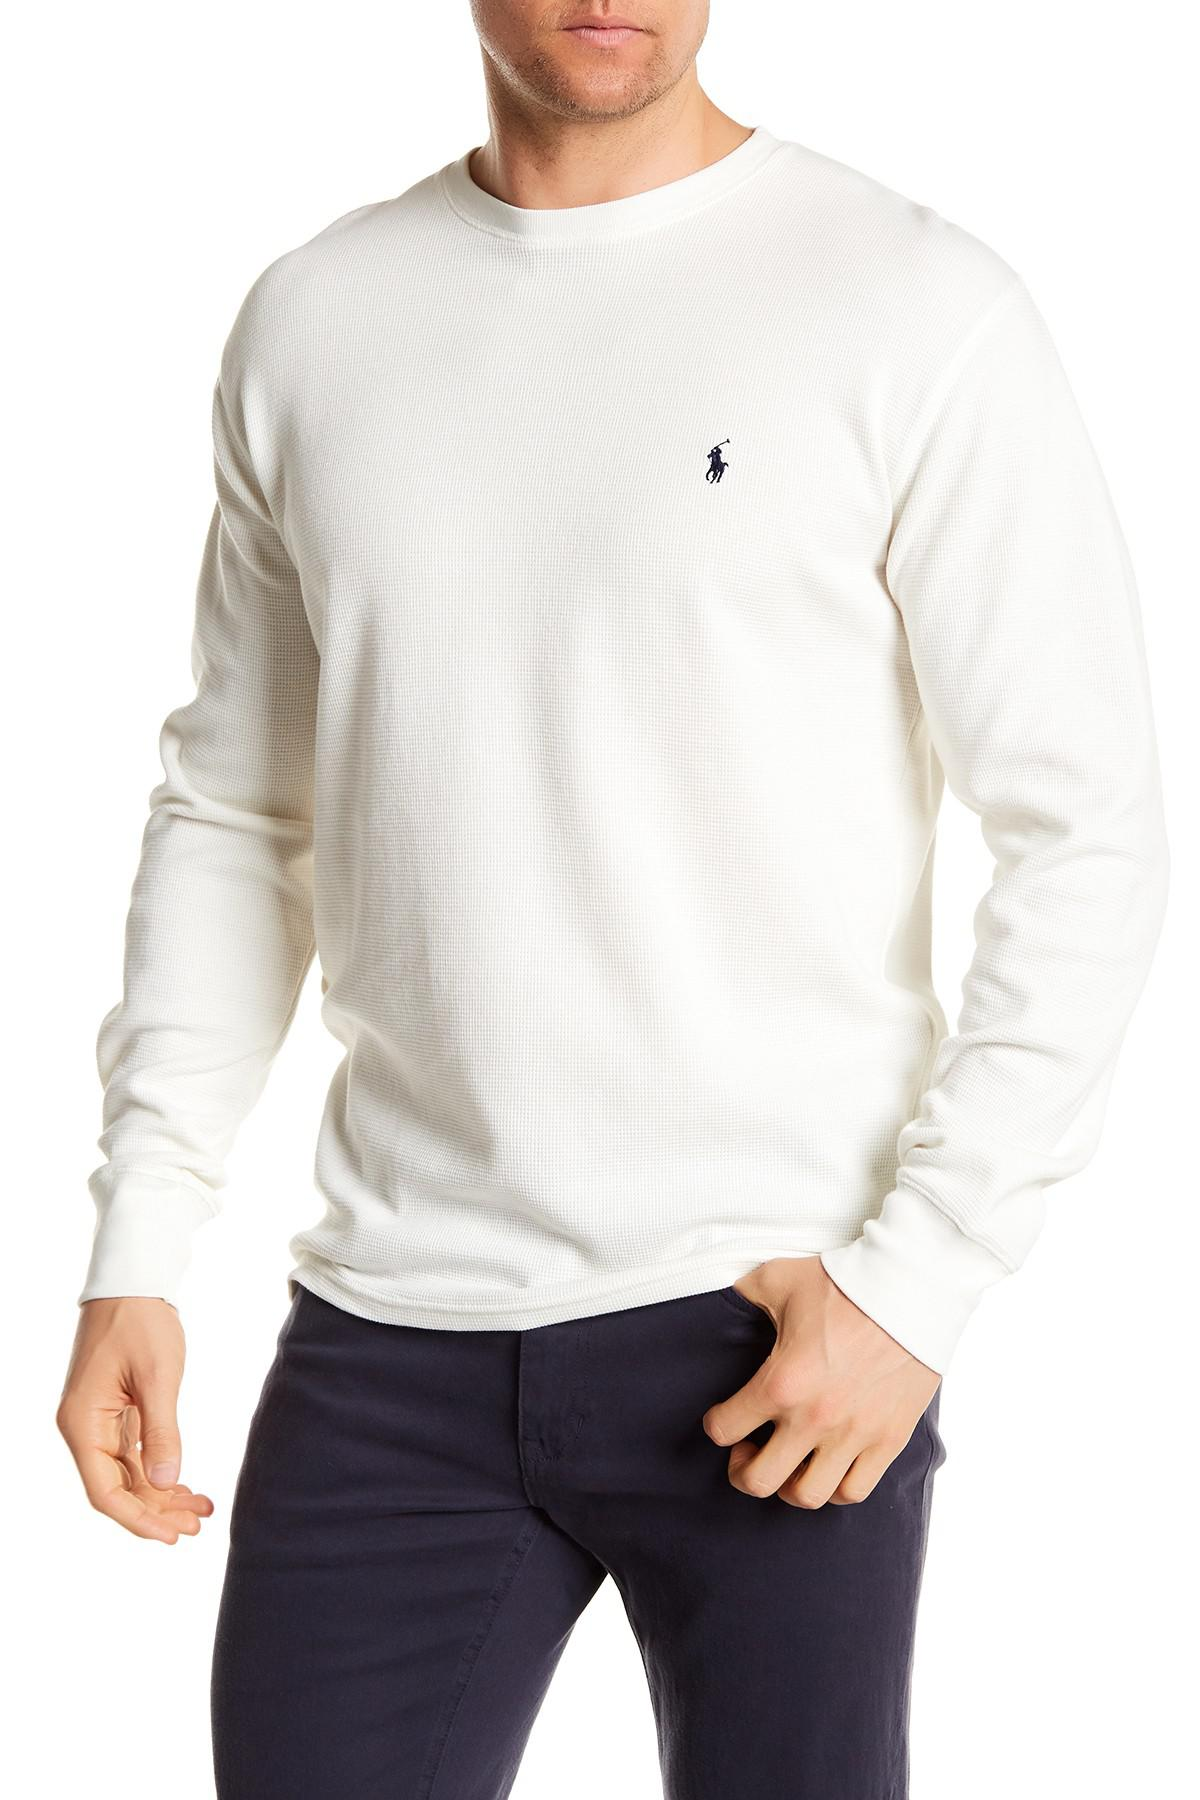 ad8c6eb1c2cd9 Lyst - Polo Ralph Lauren Waffle Knit Long Sleeve Crew Neck Tee in ...